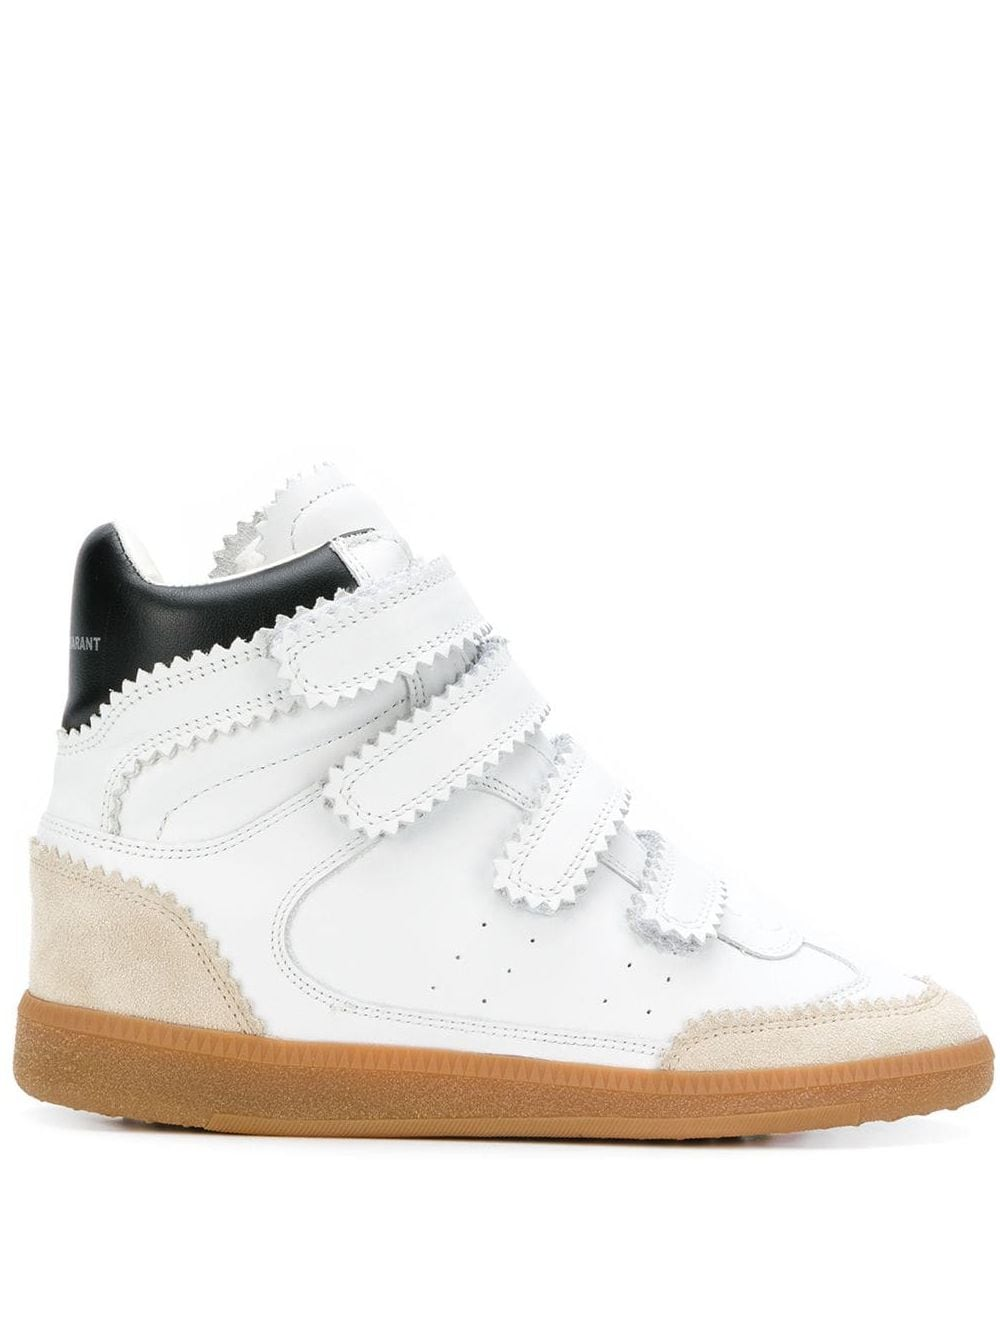 <p class='small-title'>ISABEL MARANT</p>High-Top Sneakers